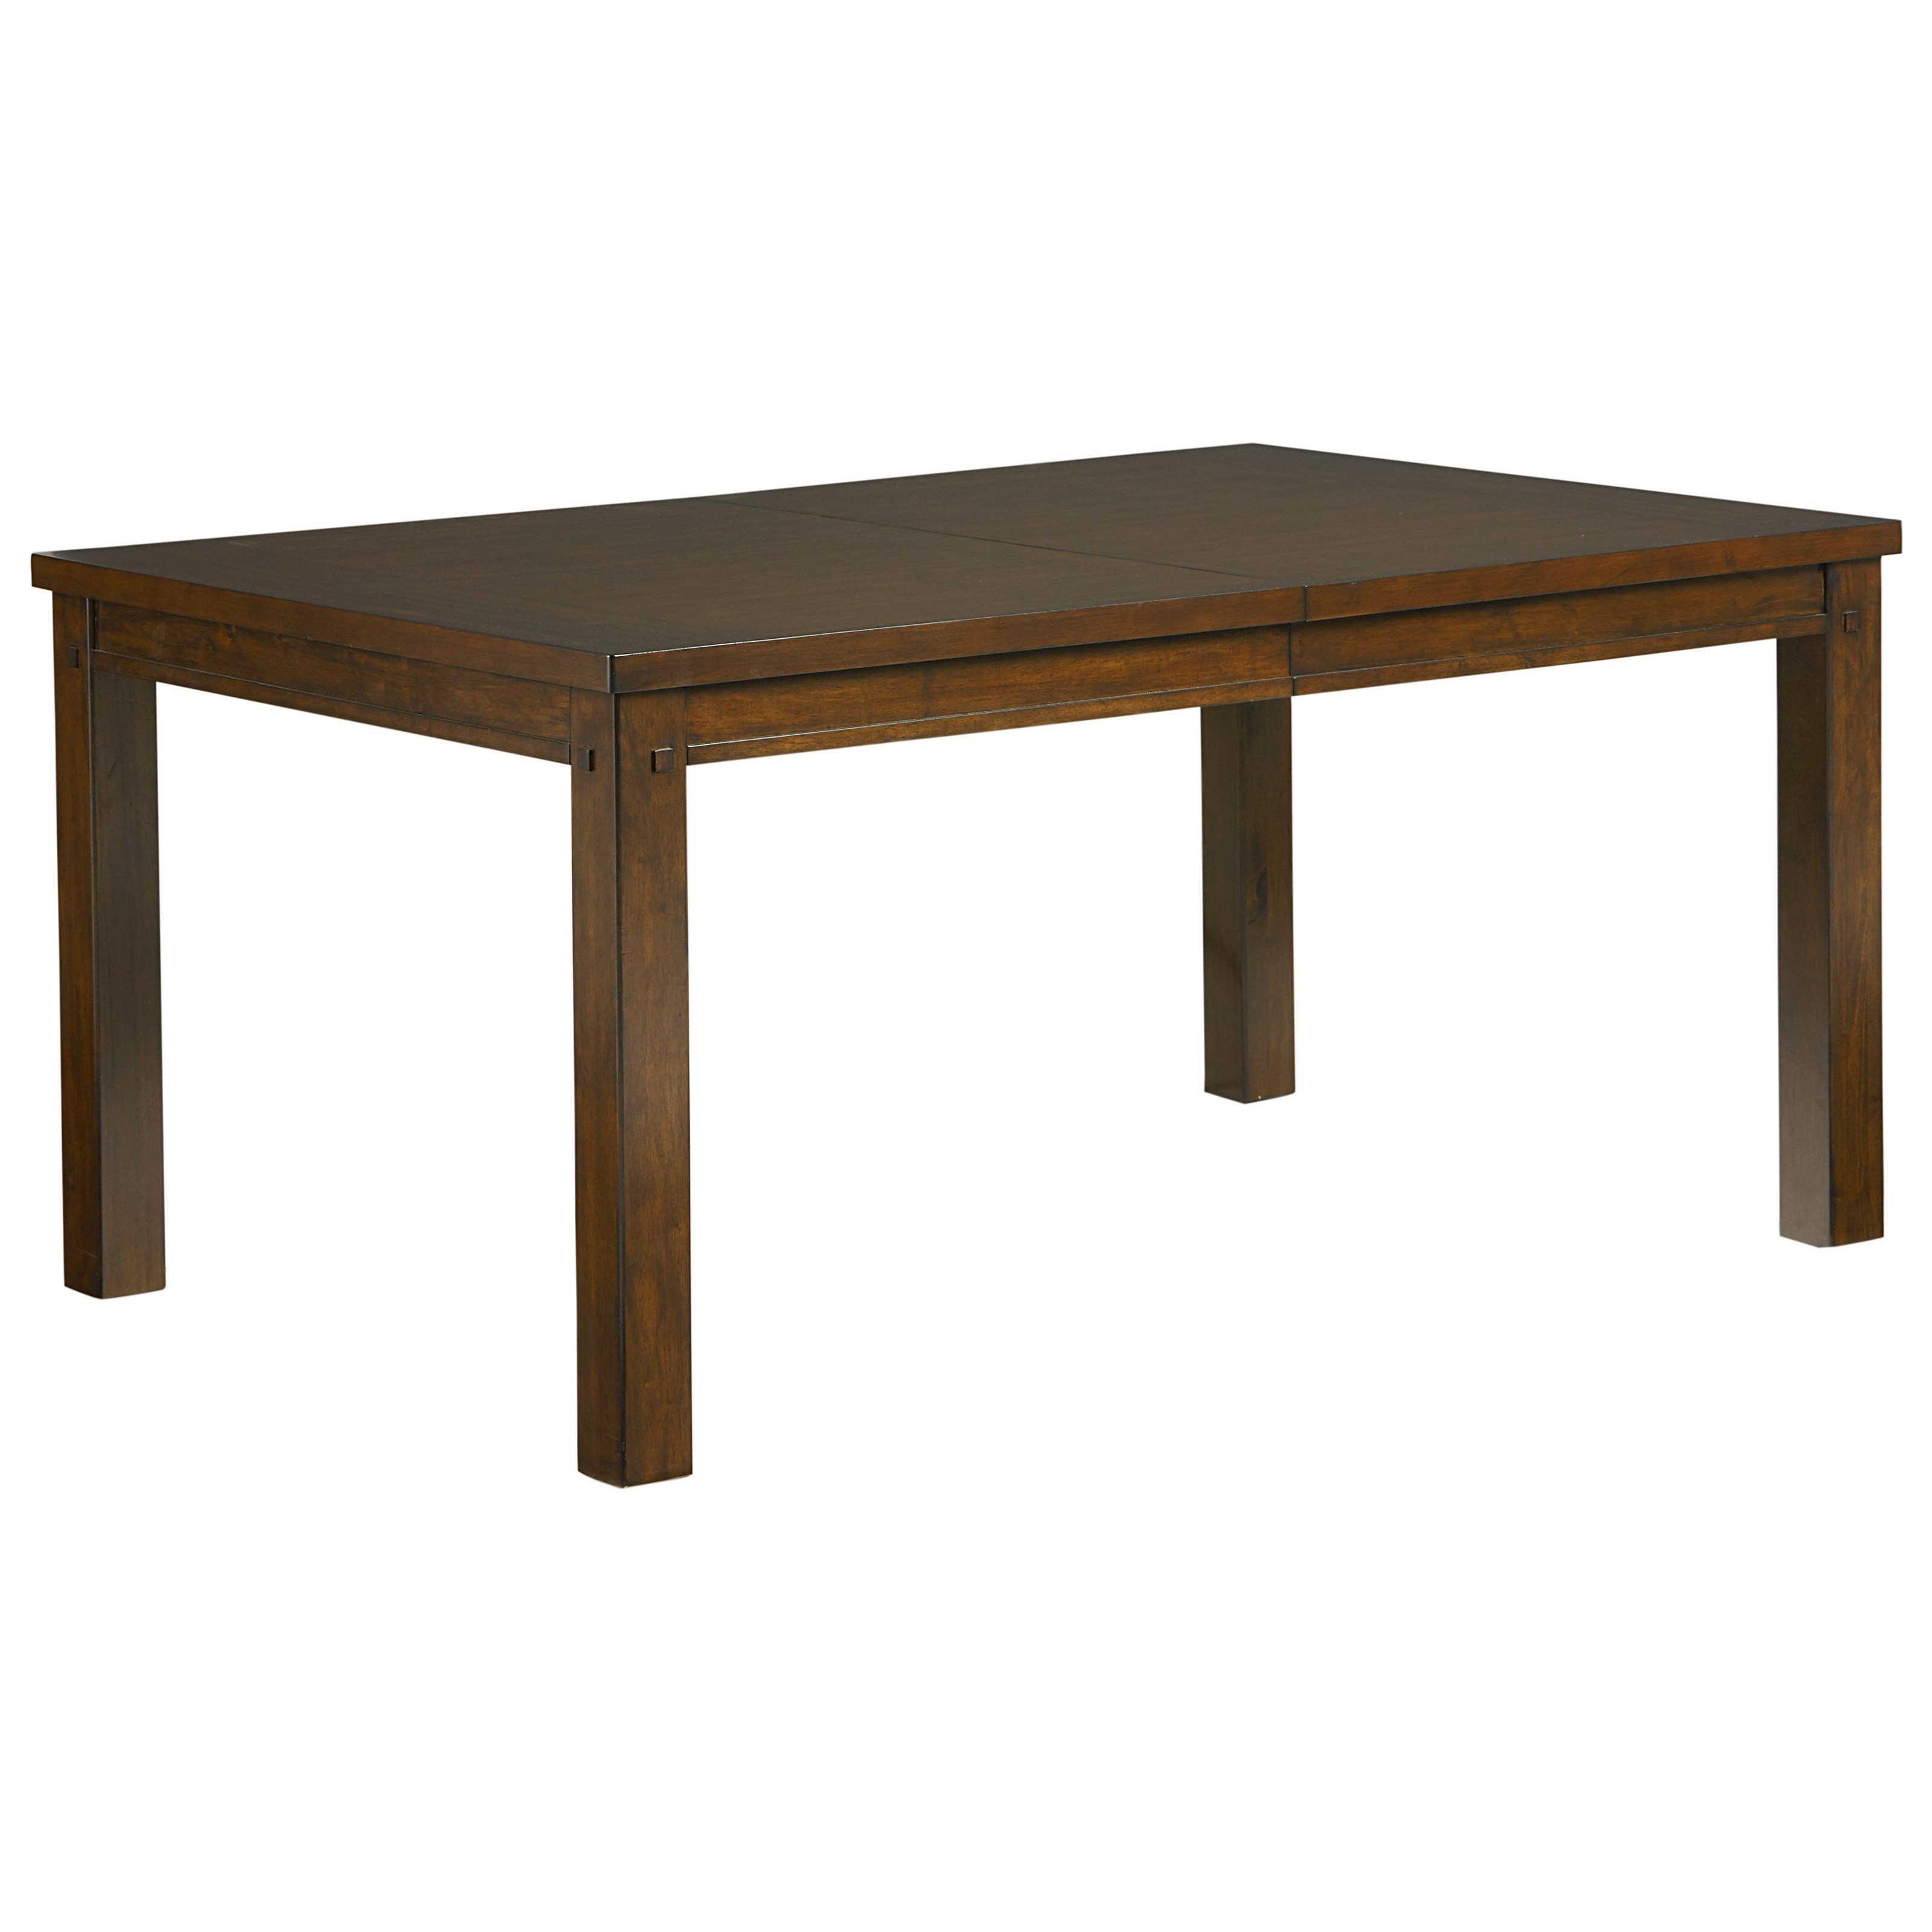 Standard furniture cameron 14301 rustic dining table with for Standard dining table